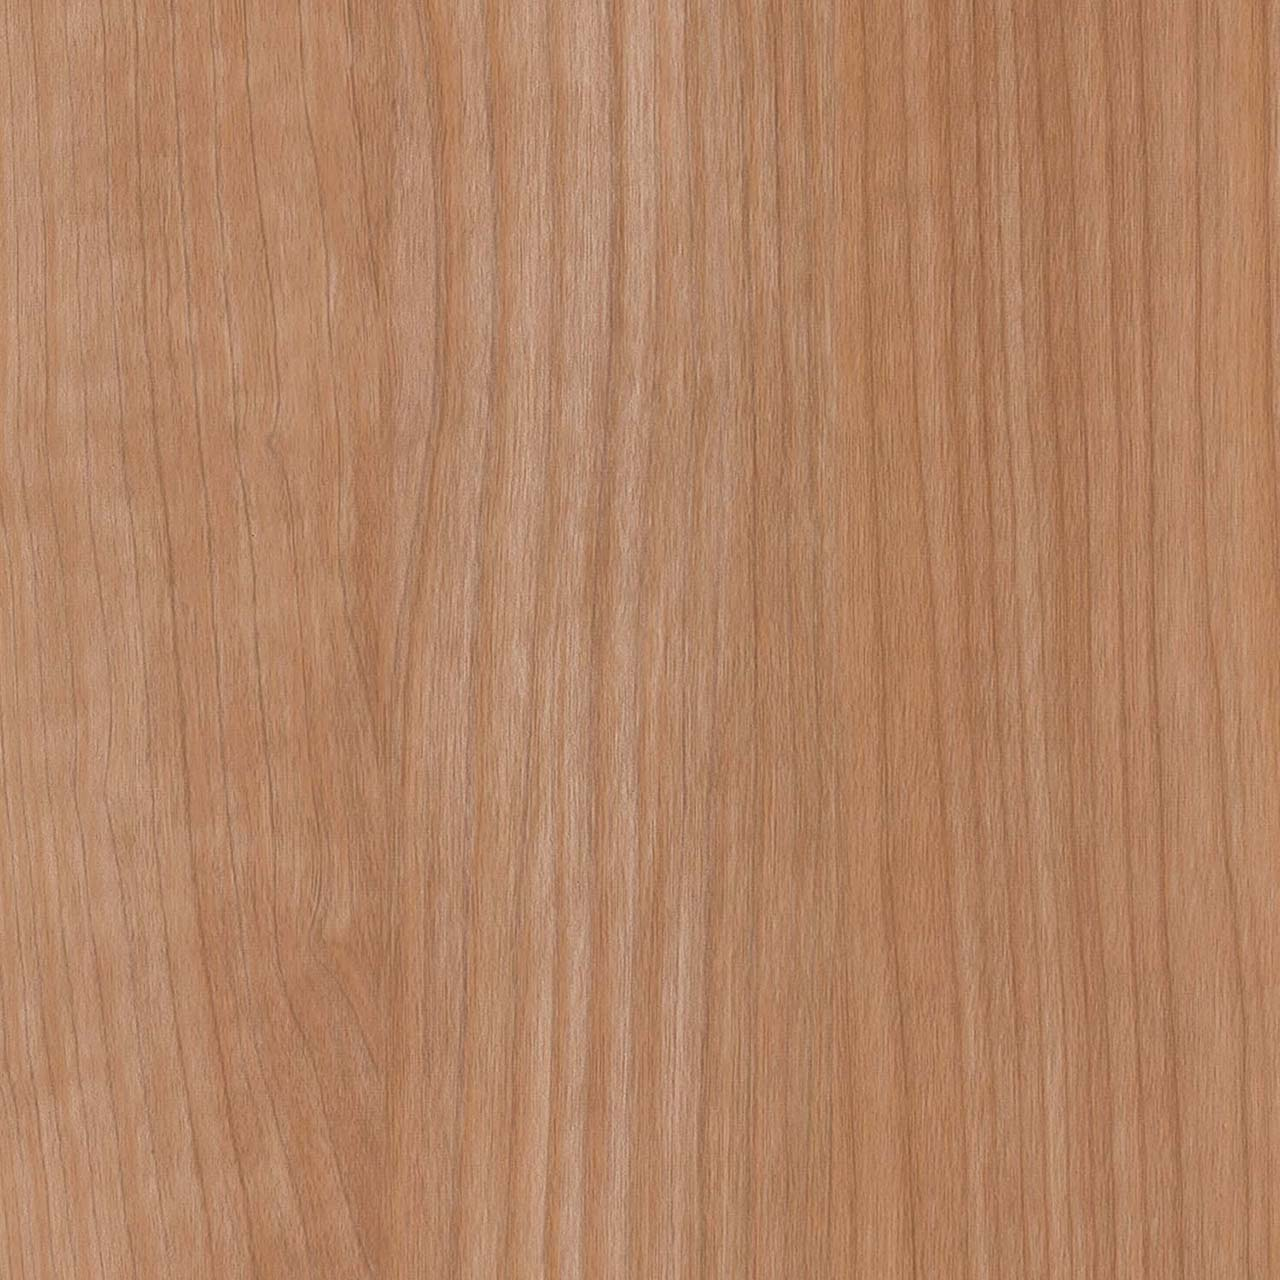 Milano Cherry effect laminate panel